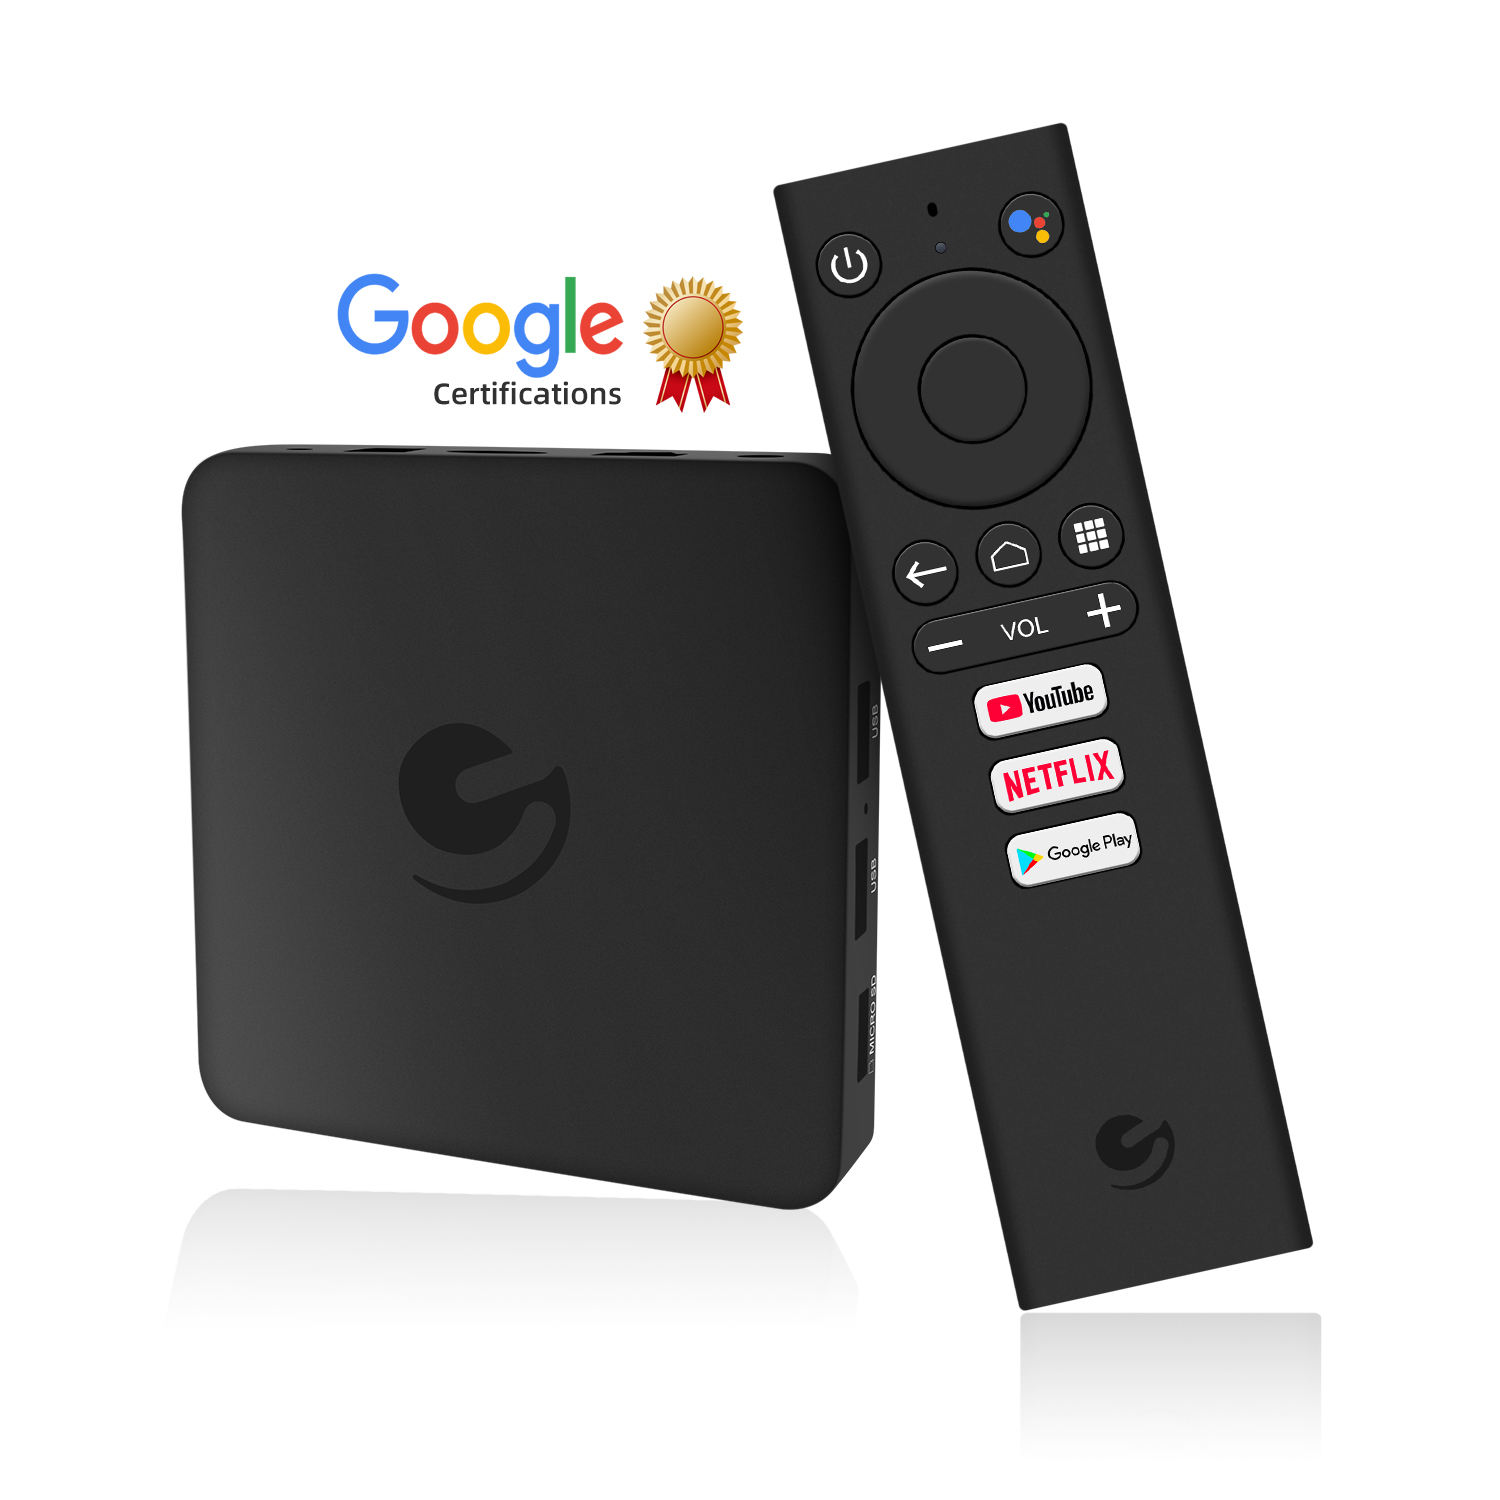 Ematic EN1015K google certified tv box 4K Netflix 2.4G / 5GHz WiFi google play android tv box with voice control